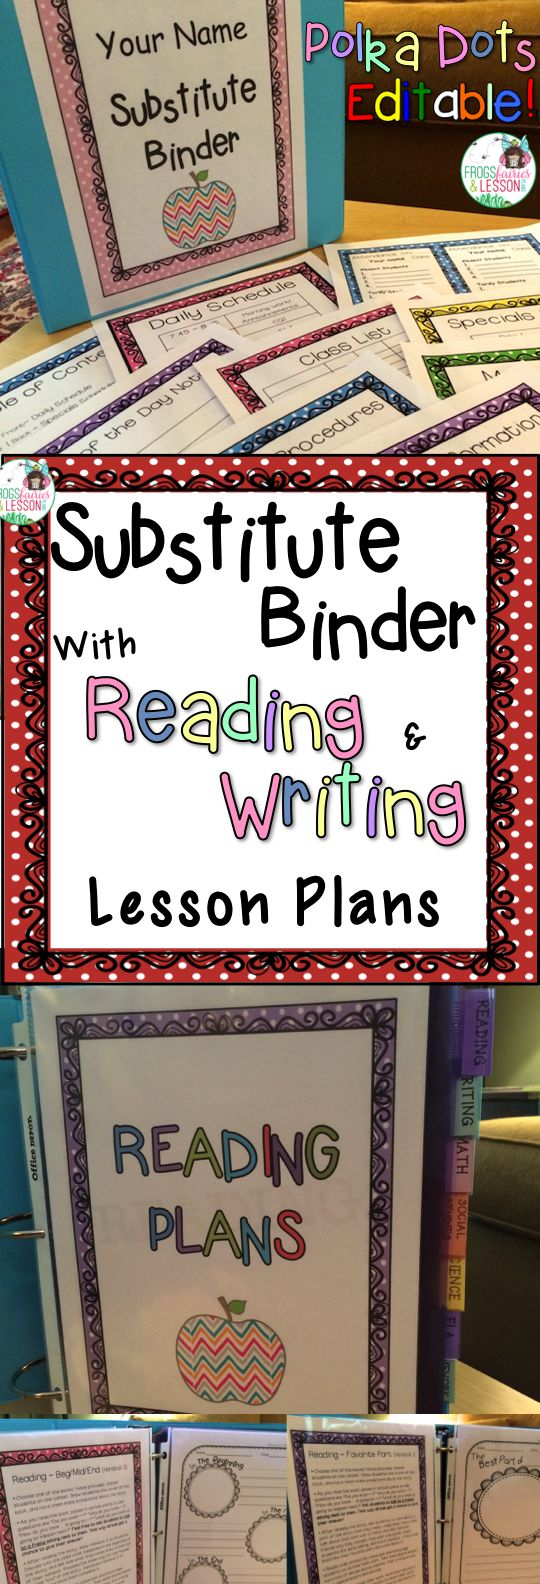 EDITABLE Substitute Binder with Reading and Writing Lesson Plans! Cover choices and EDITABLE templates that will make it easy for you to take a day off when you need one! Several Reading and Writing lesson plans PLUS handouts that go with each lesson are included. Comes with step by step directions. Polka Dots theme.